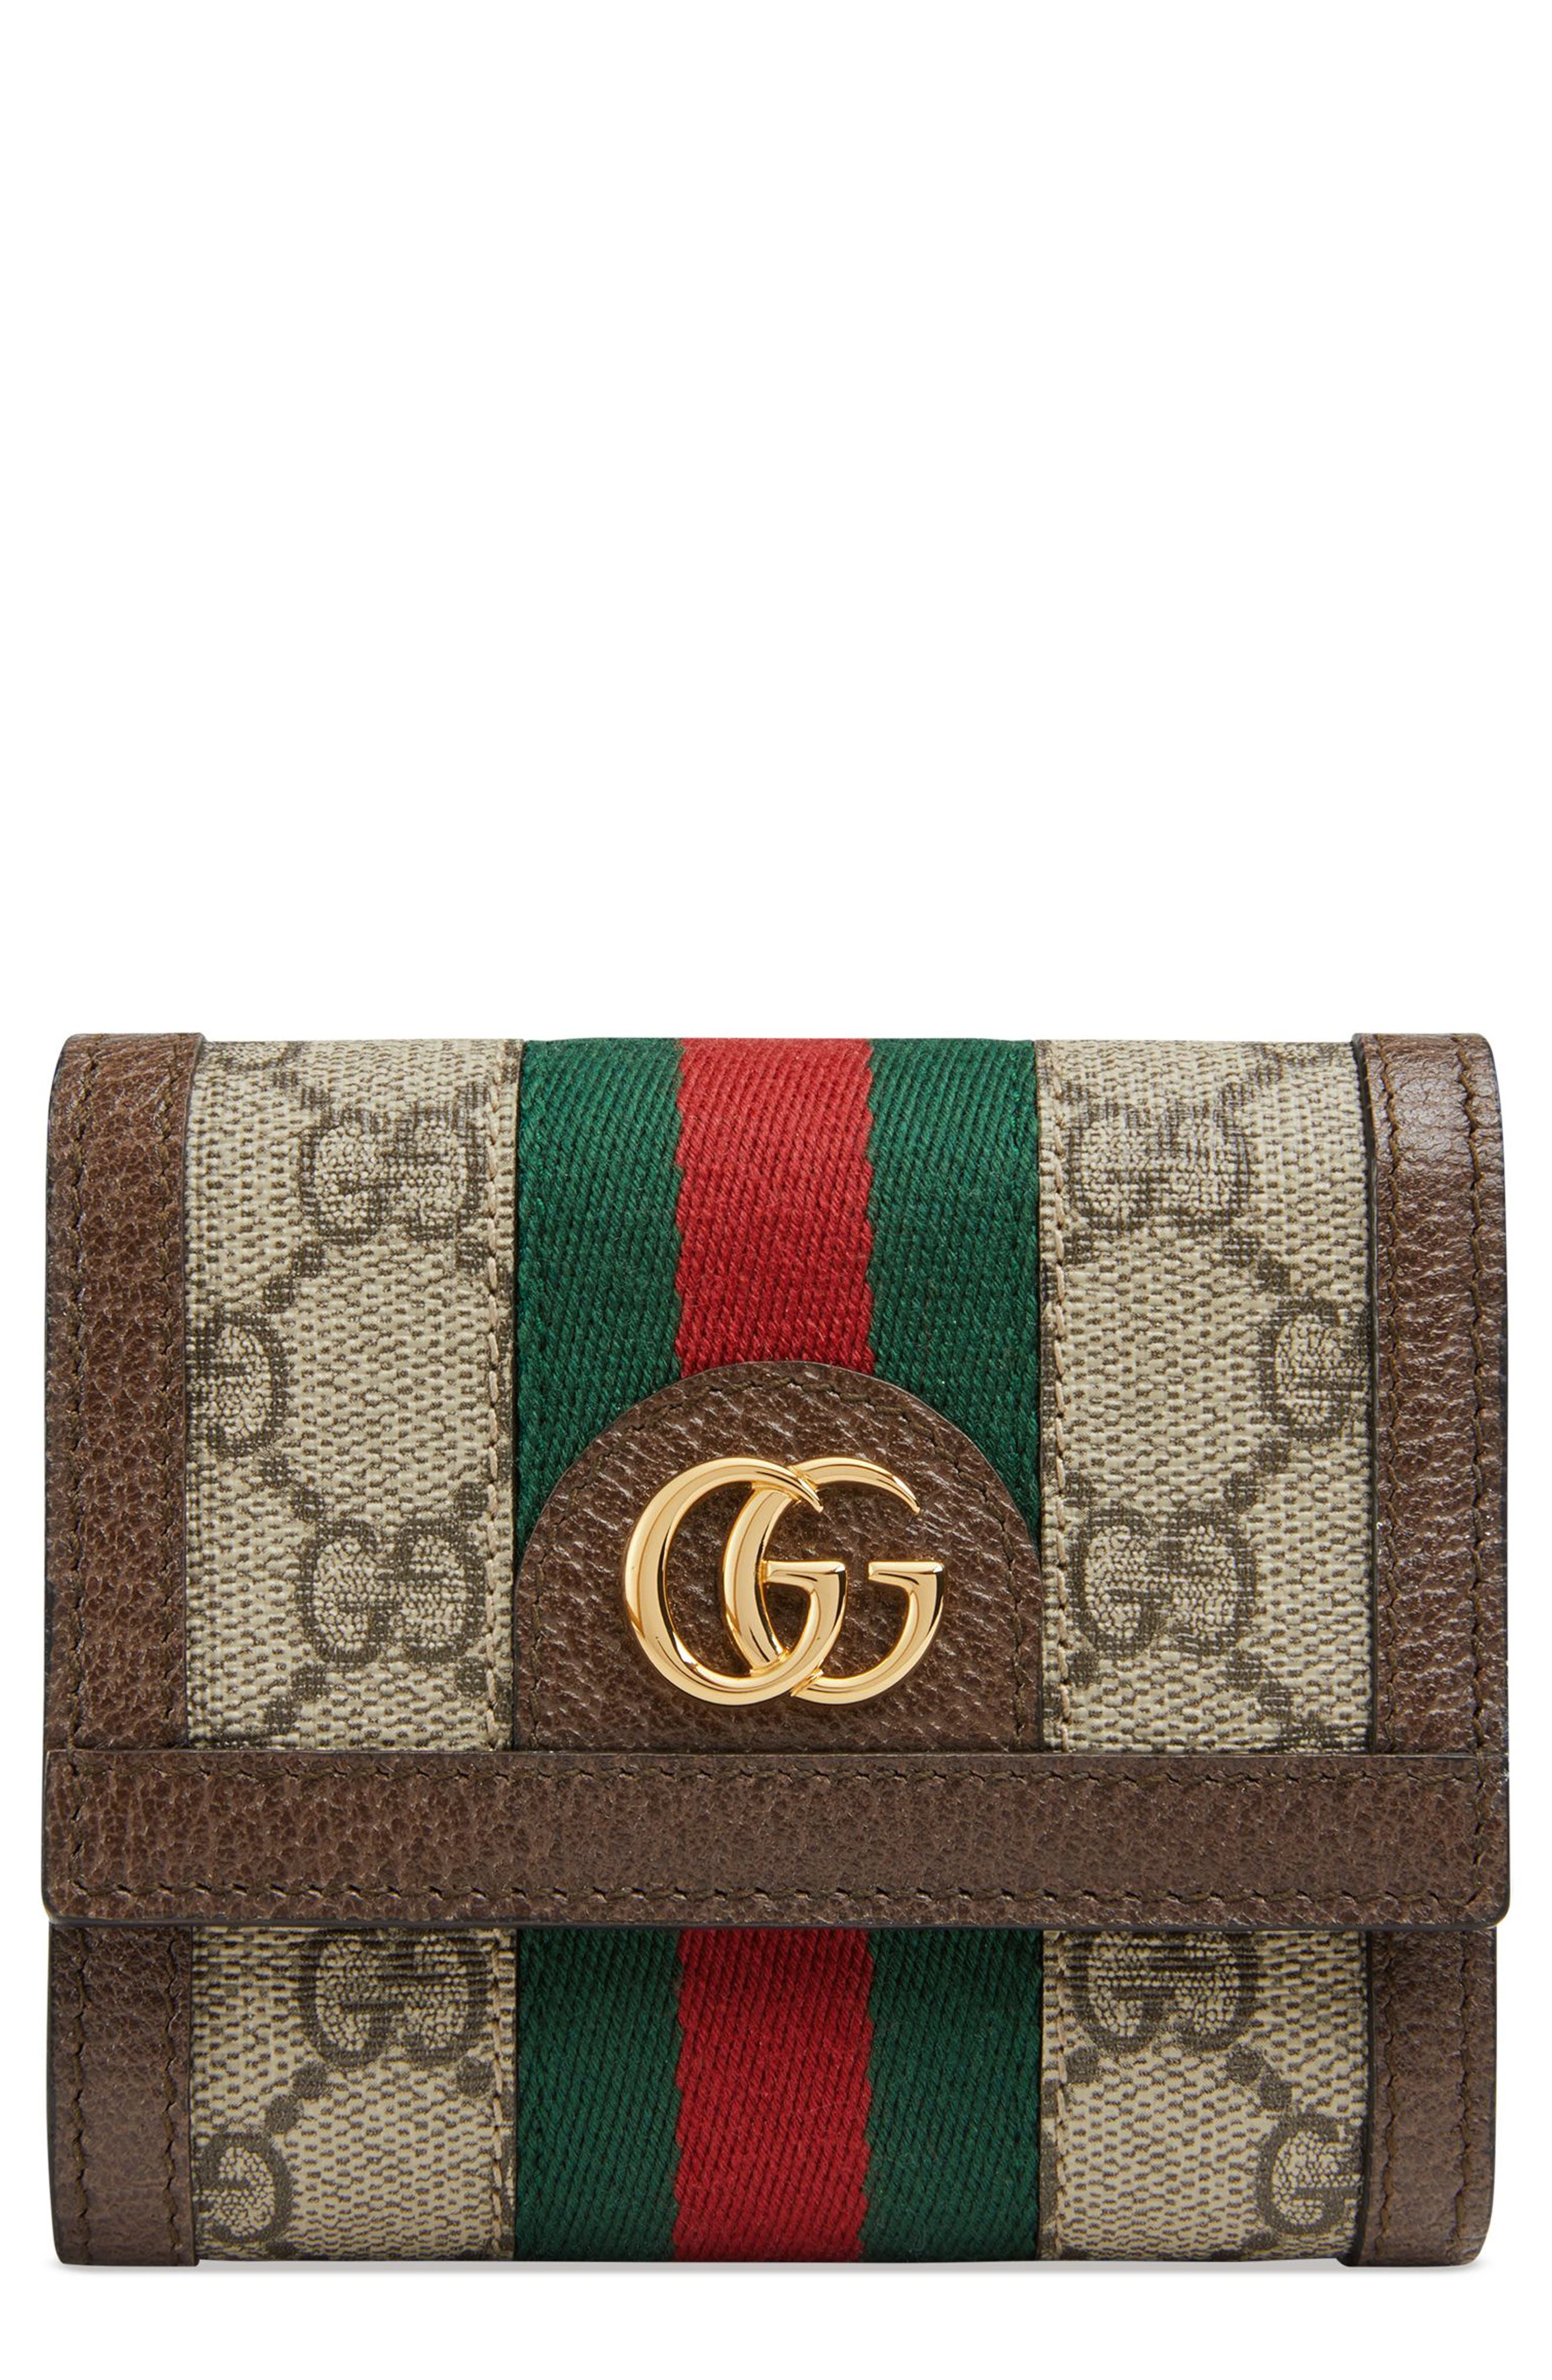 Ophidia GG Supreme French Wallet,                         Main,                         color, Beige Ebony/ Acero/ Vert Red